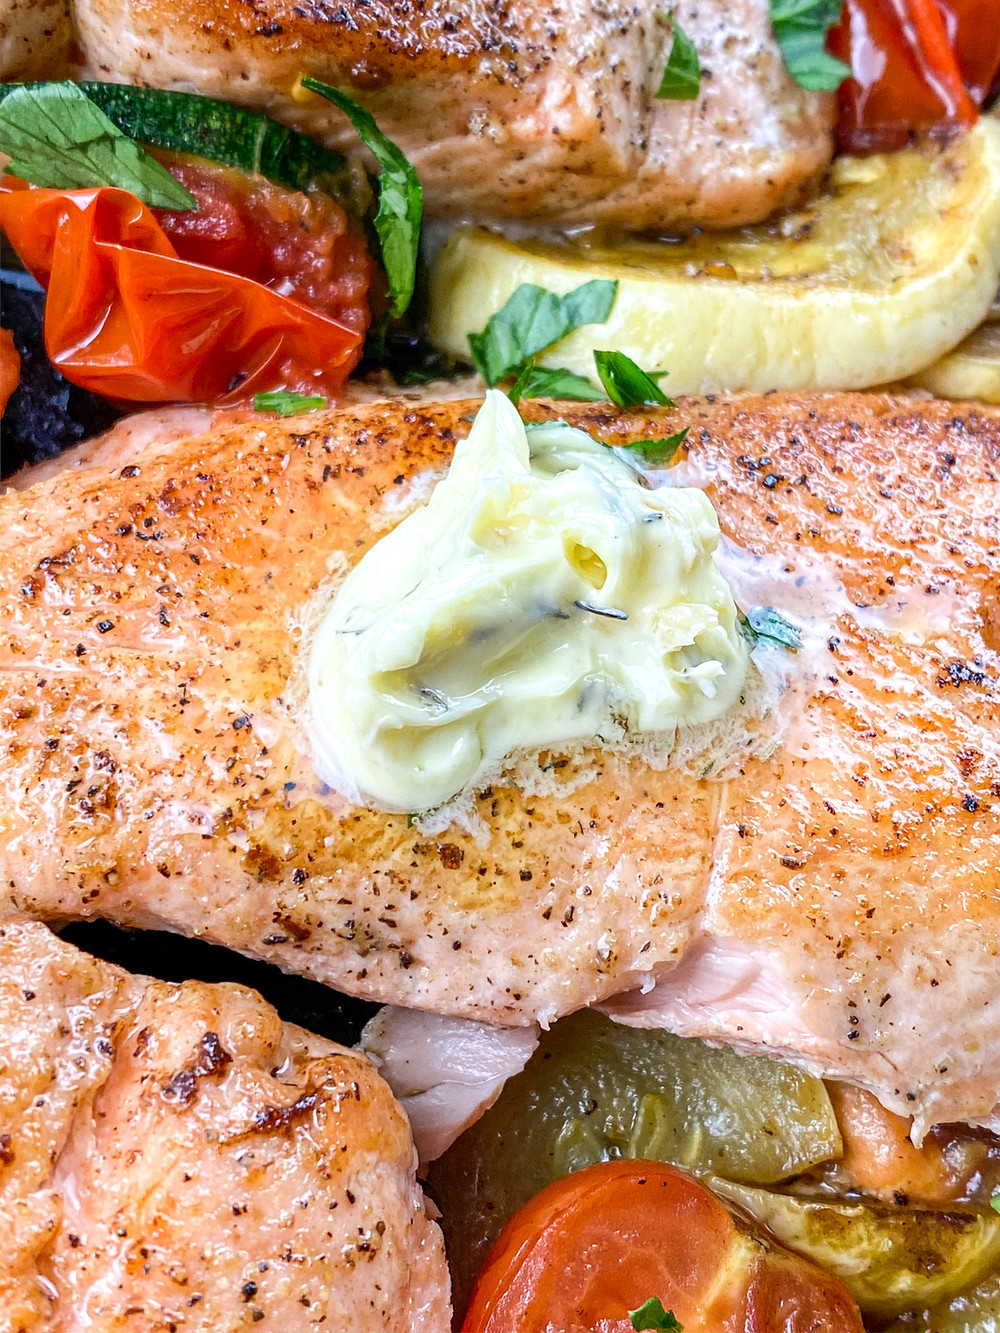 This is a cover image for a recipe for Crispy Salmon in Herb Butter from Eats and Journeys